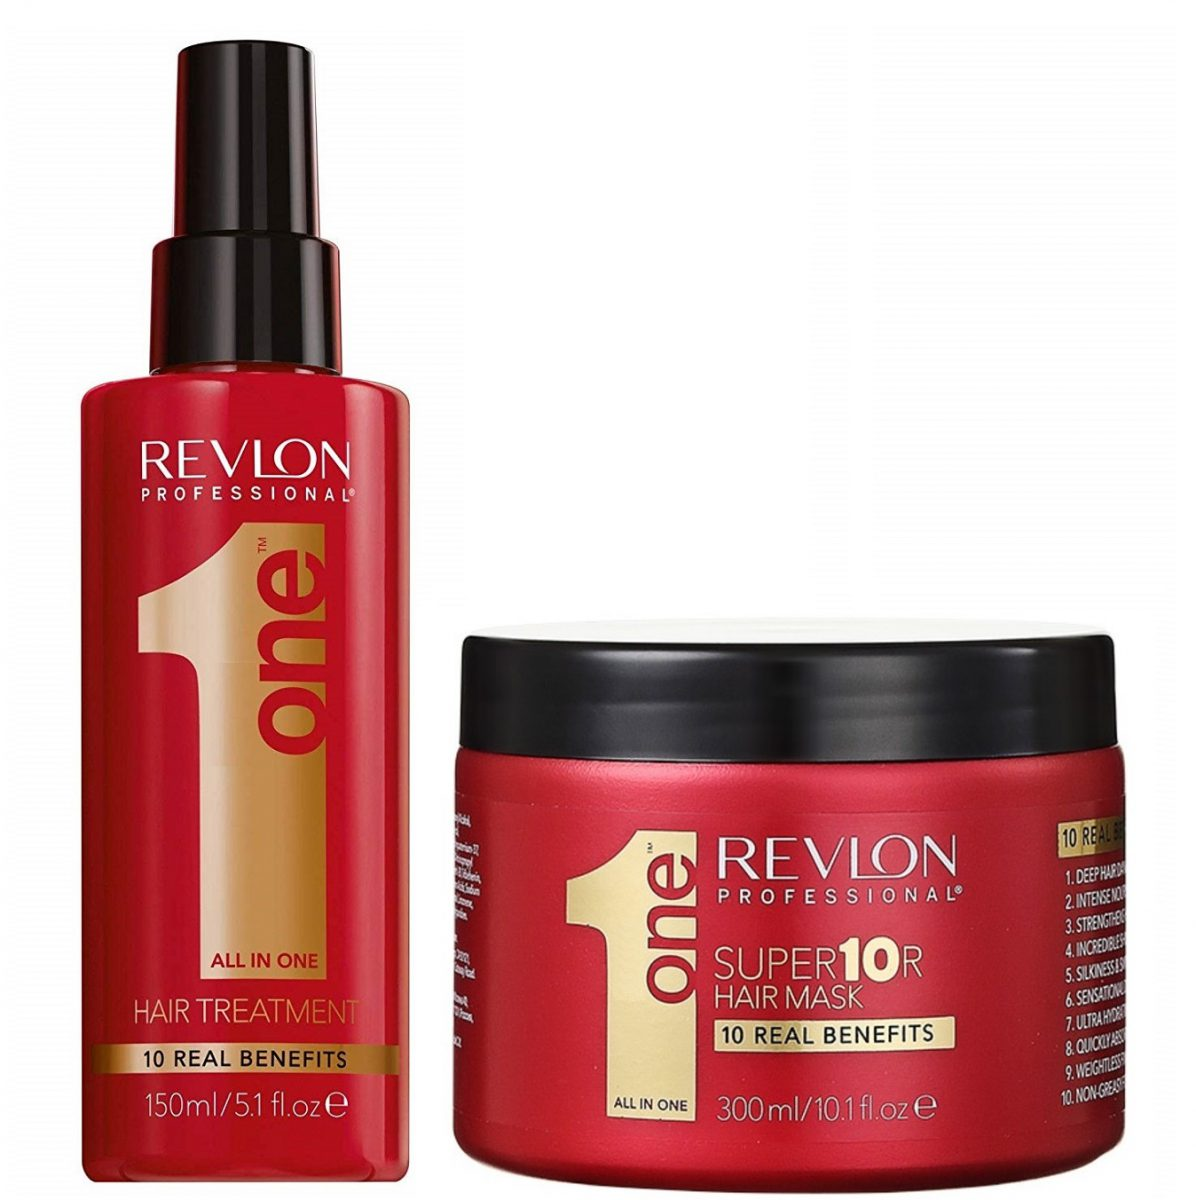 03_Revlon_Profesional_One_Hair_Treatment_150ml_Superior_Mask_300ml_.jpg